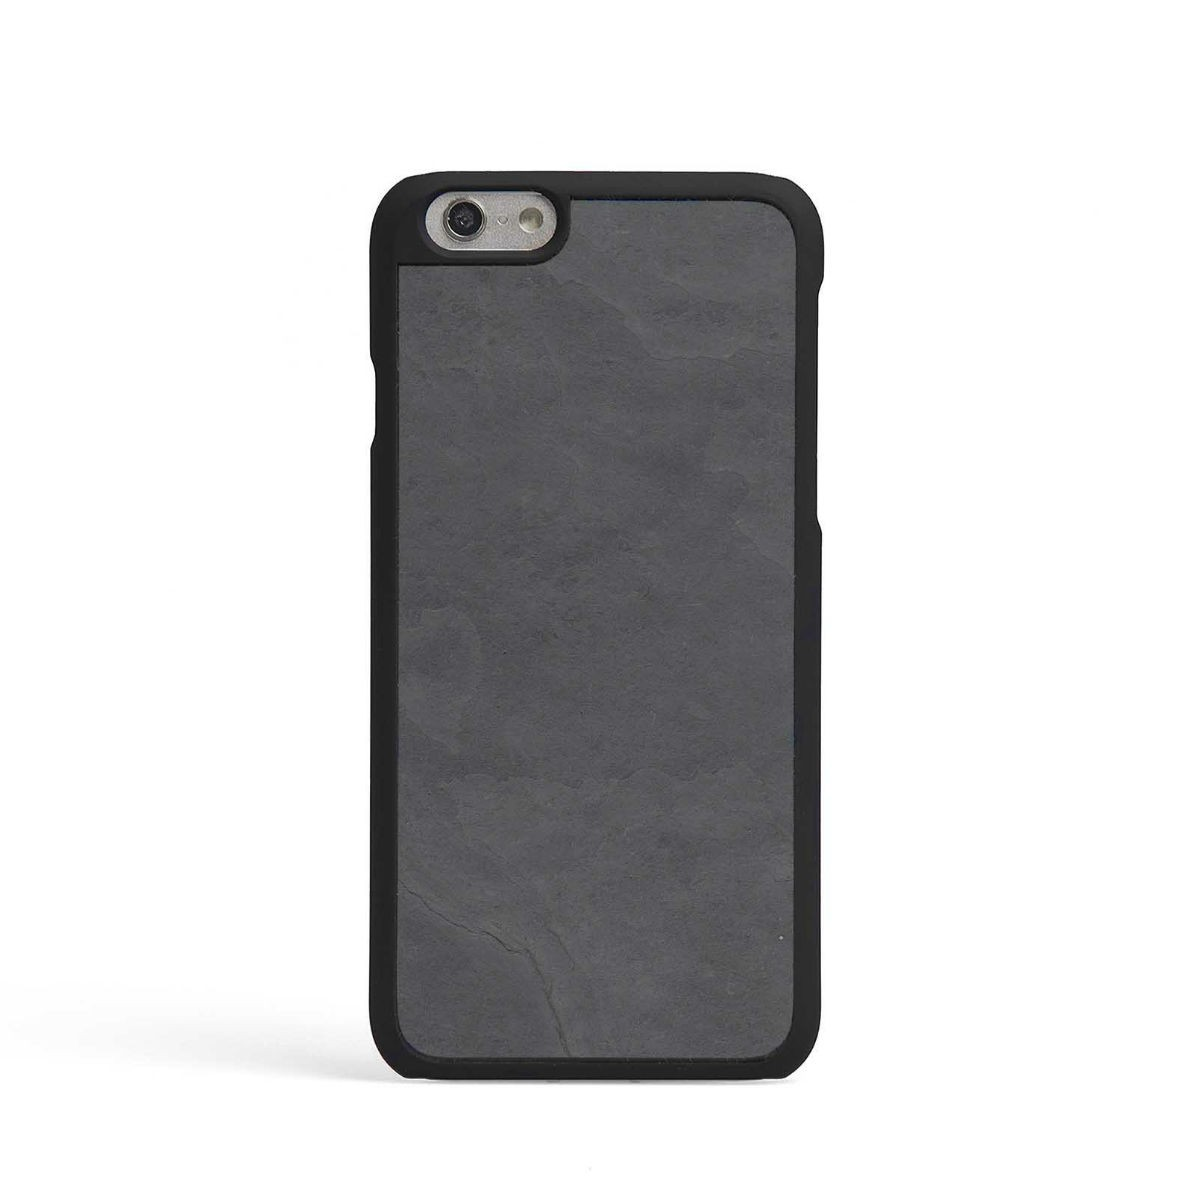 Kryt na iPhone – Black slate – 6 6S a154b14e353